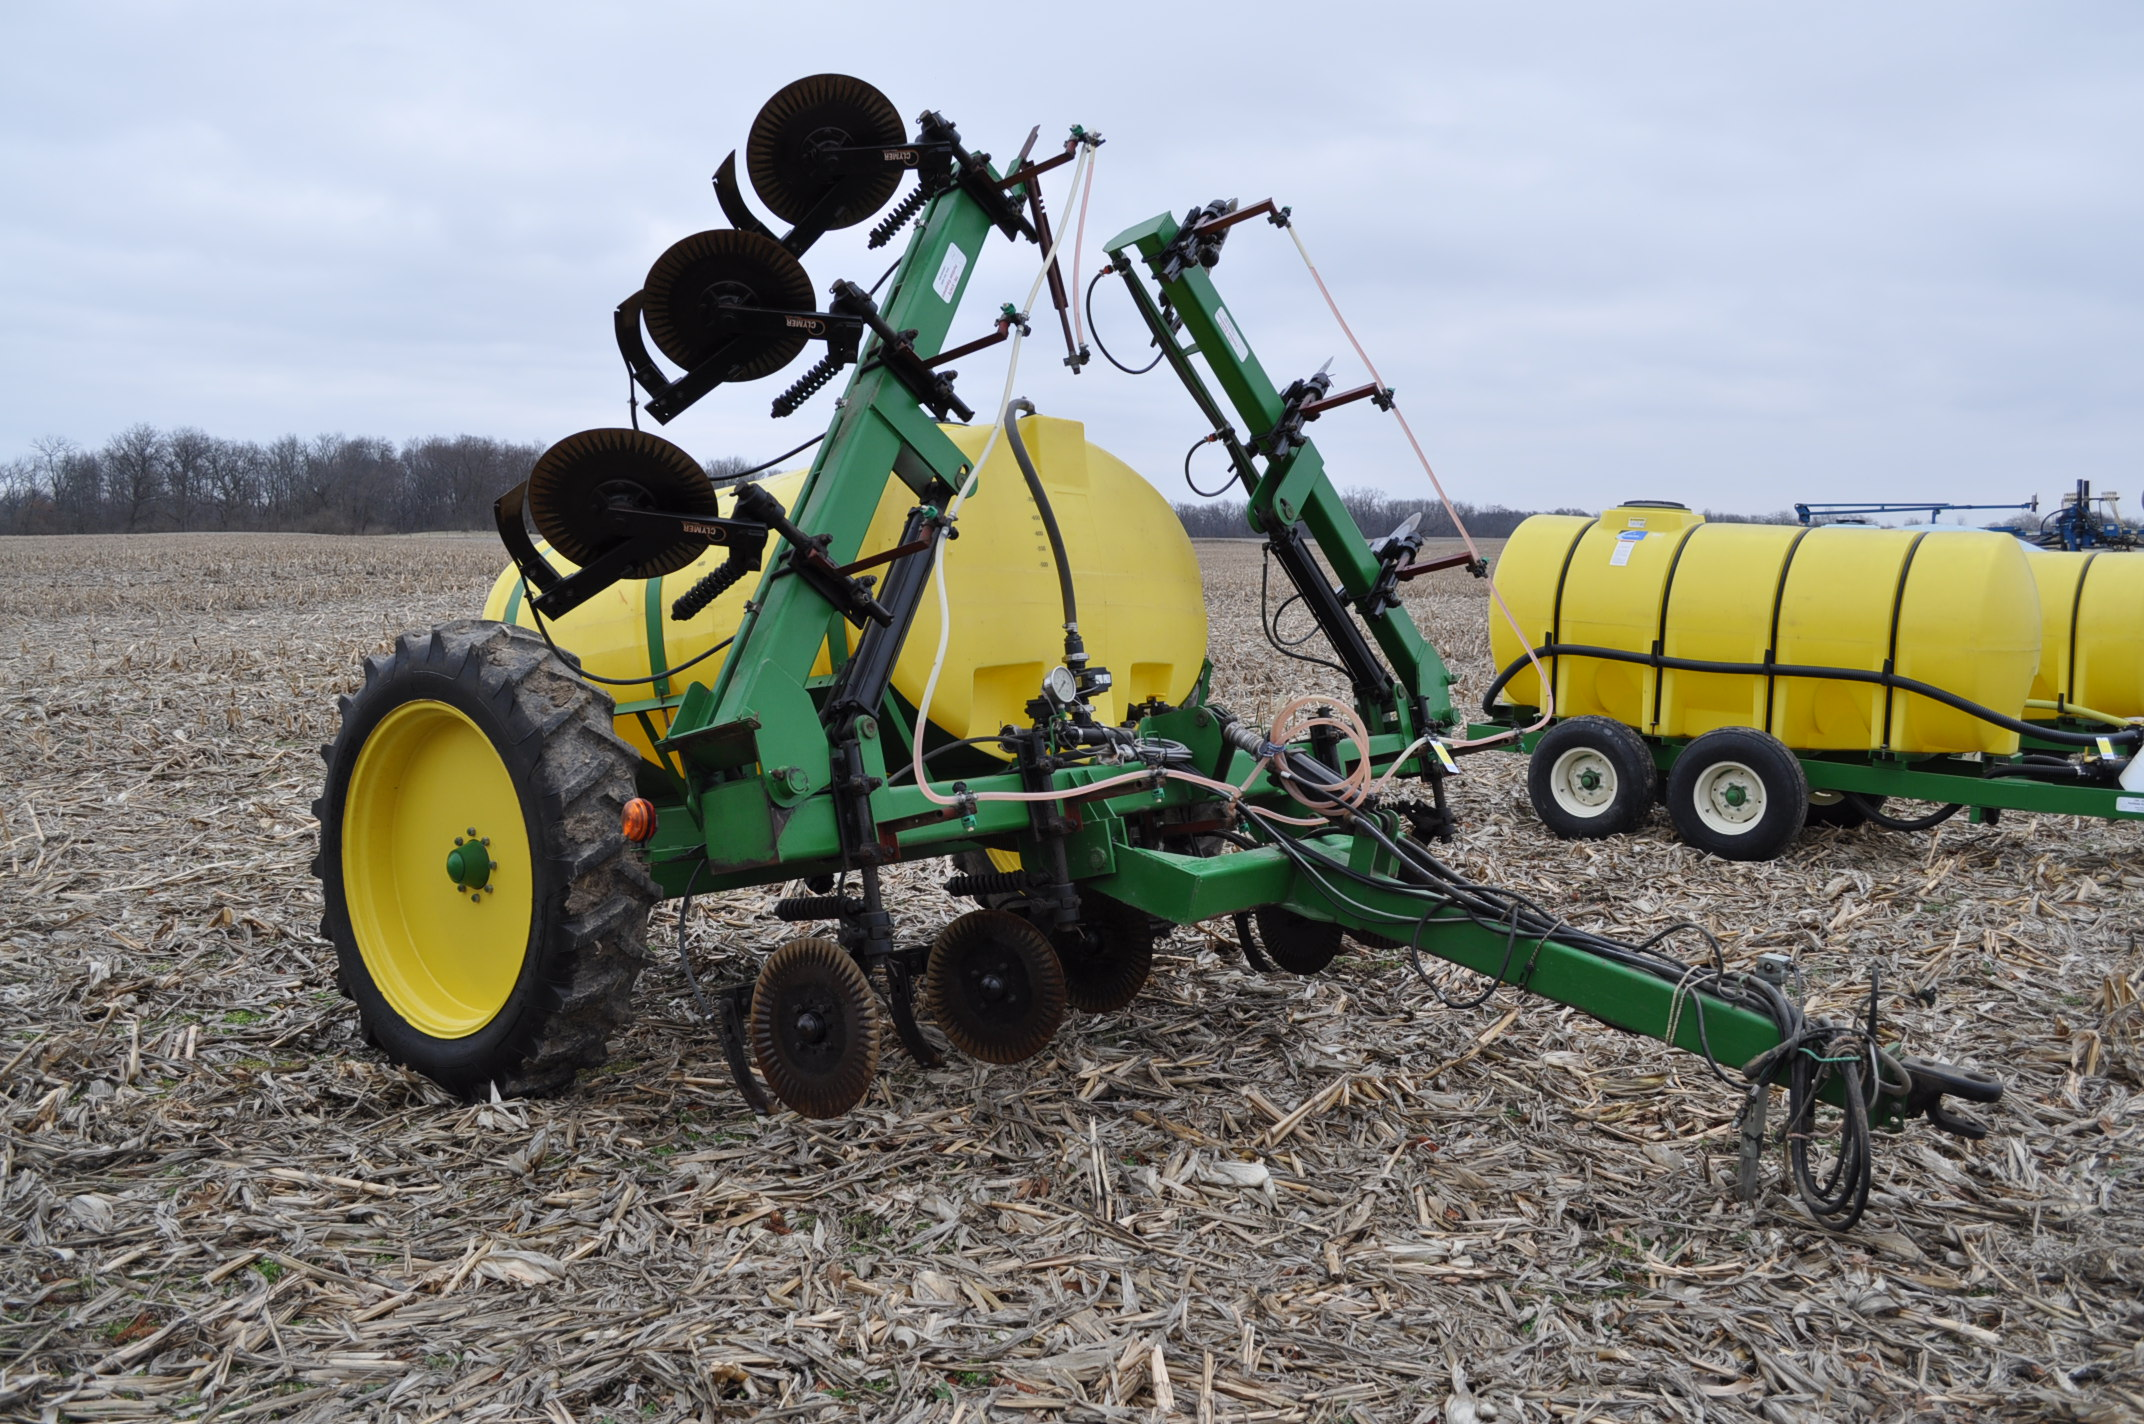 Spray King 28% applicator, 11 coulters w/ knives, 850 poly tank, SS hyd pump, spot spray nozzles - Image 4 of 15